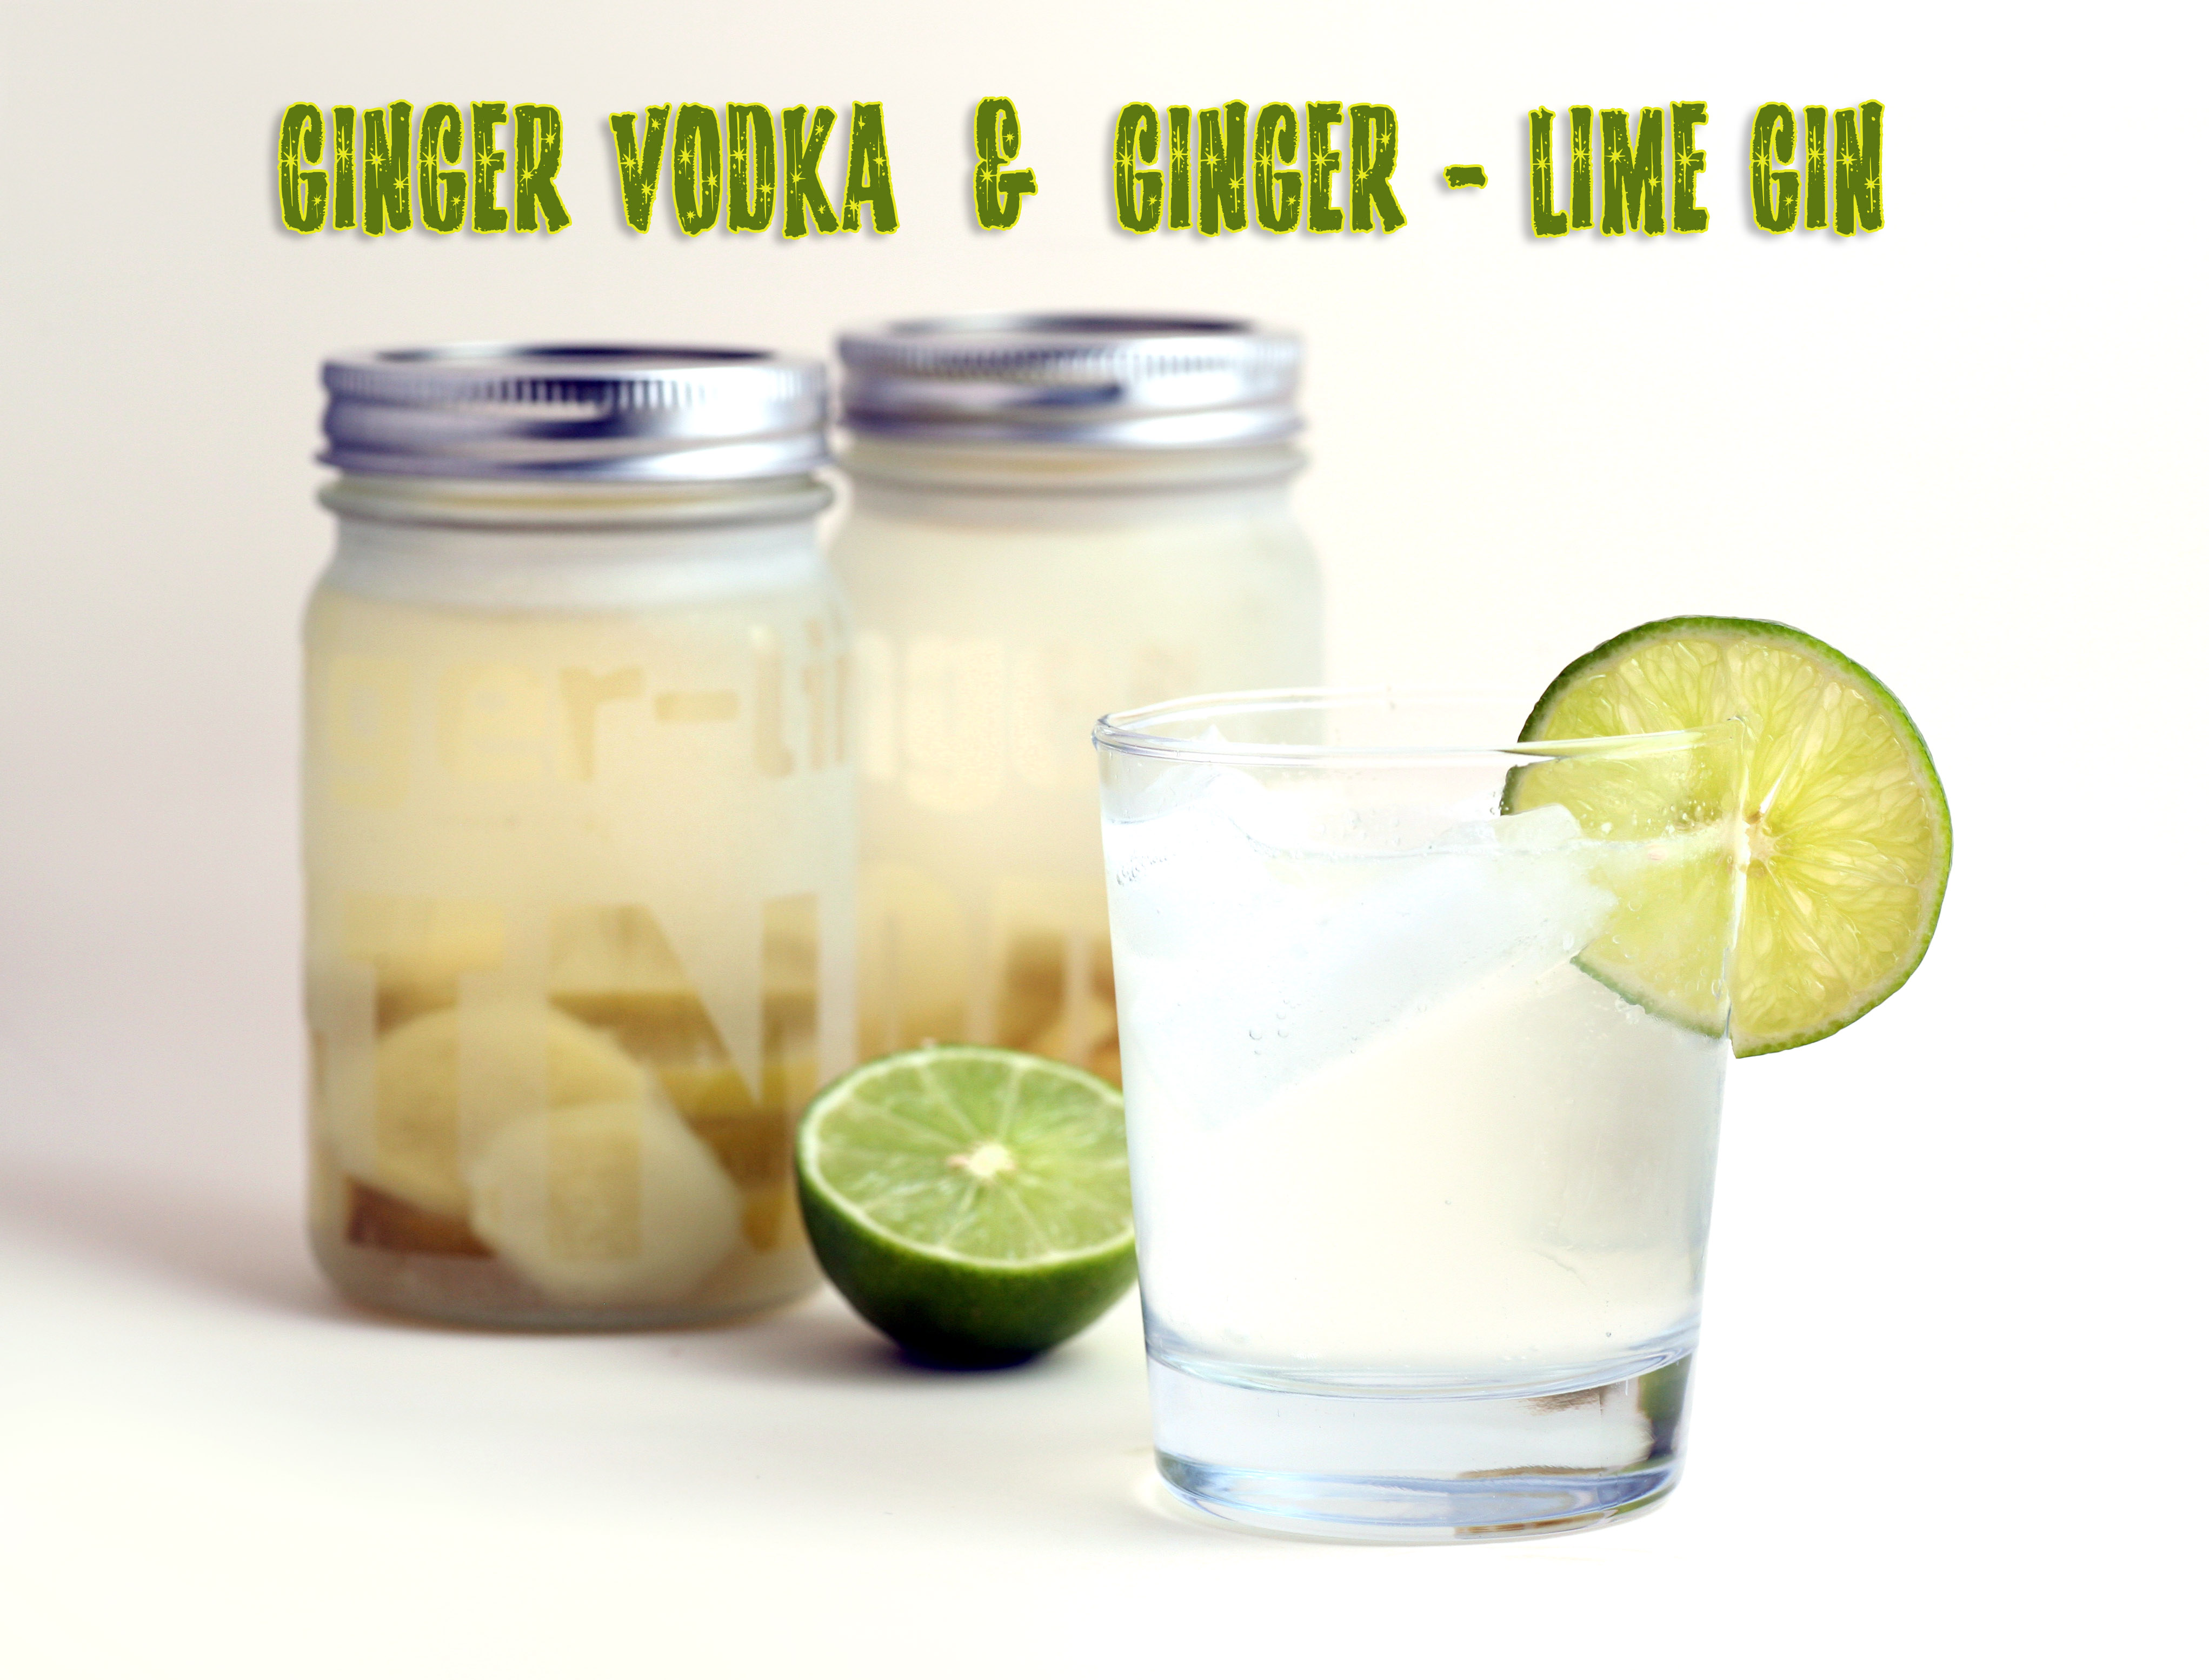 Ginger Vodka in Etched Glass Gift Jars